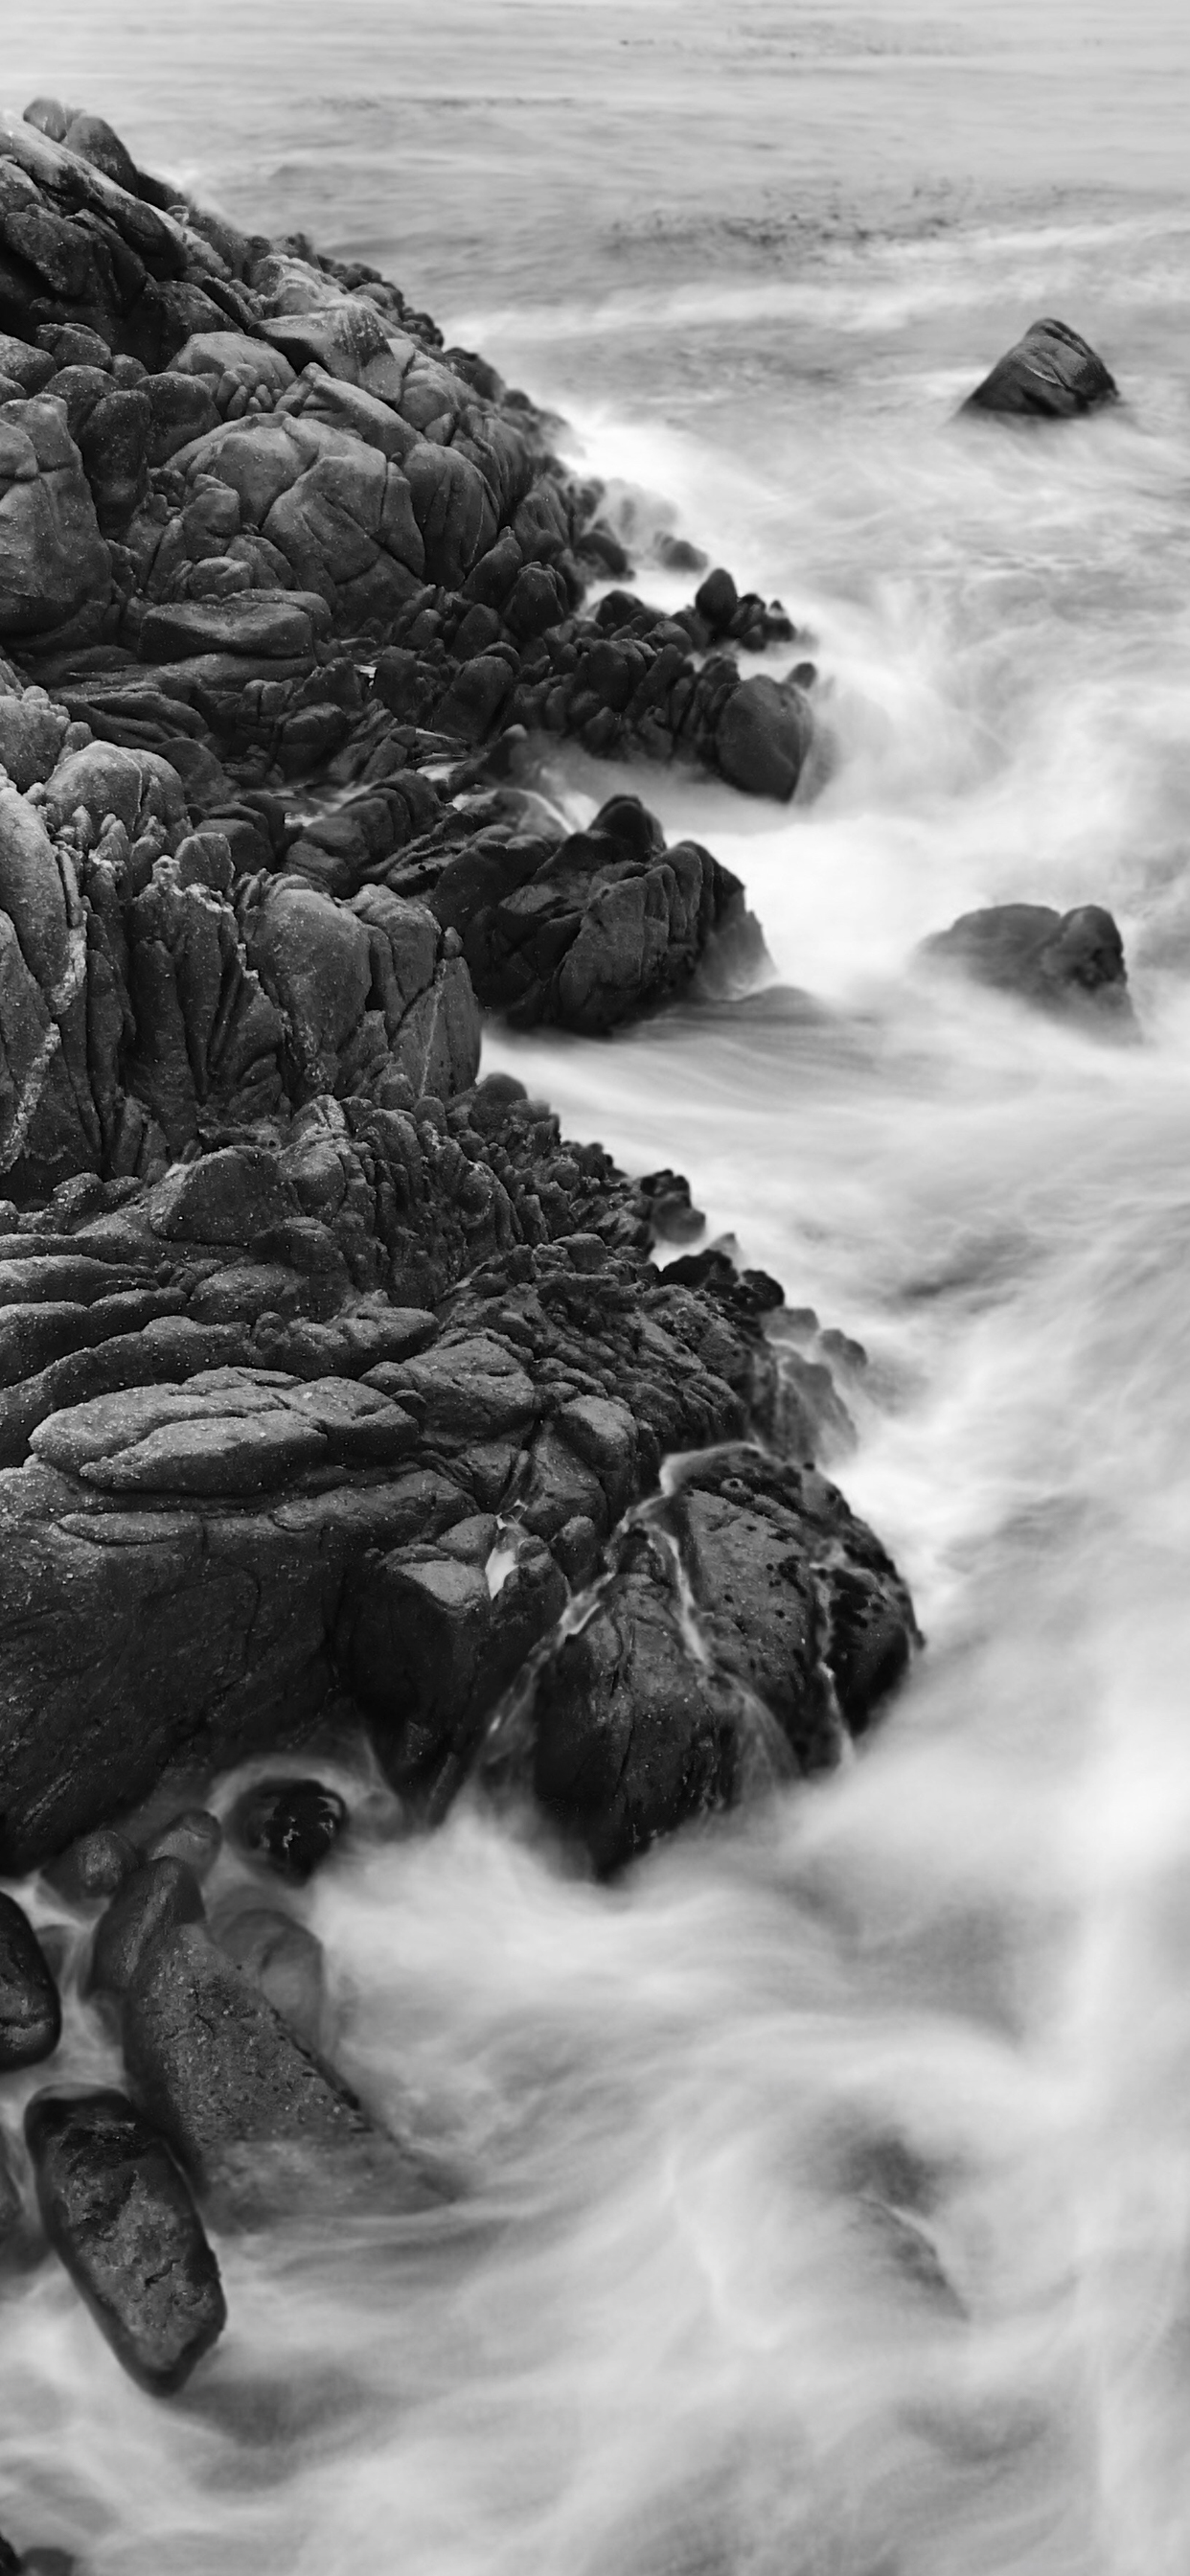 Blur, Long Exposure, Motion, And Water Wallpaper For - Iphone 11 Pro Max - HD Wallpaper